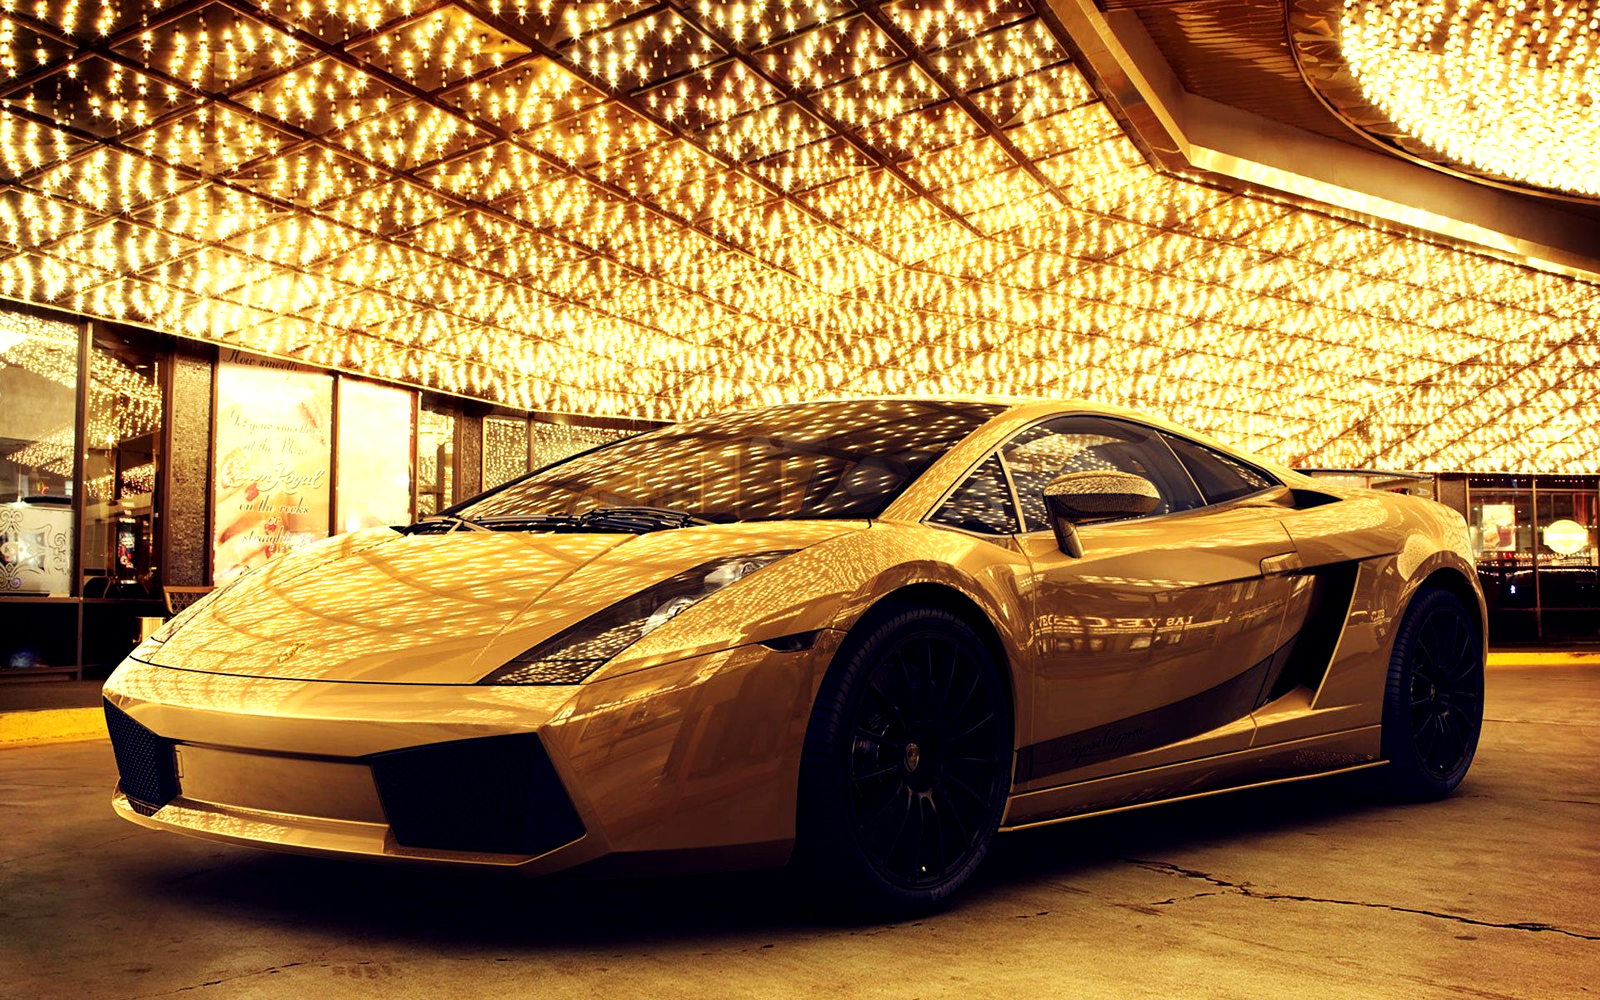 Golden Cars: Central Wallpaper: Gold Bars And Coins HD Wallpapers Stock